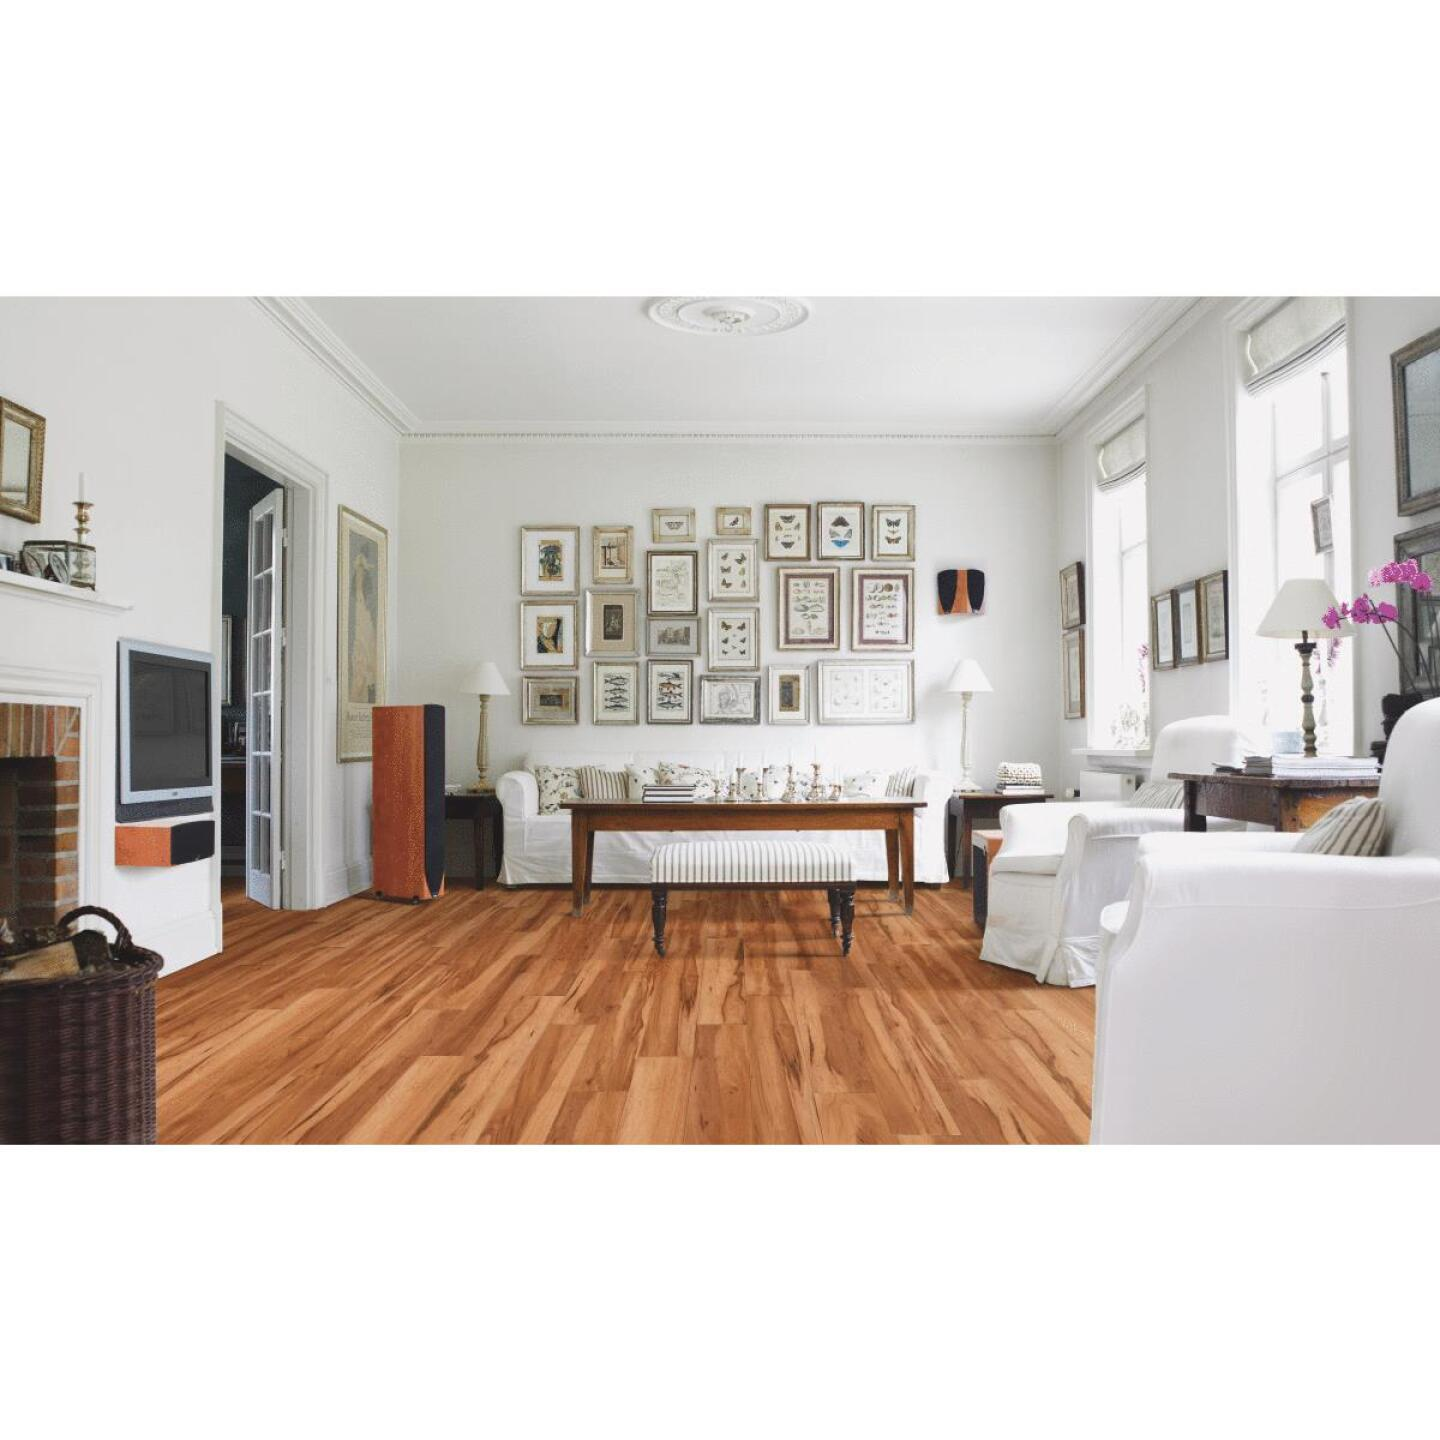 Balterio Right Step Ruby Maple 5.28 In. W x 49.72 In. L Laminate Flooring (21.86 Sq. Ft./Case) Image 2